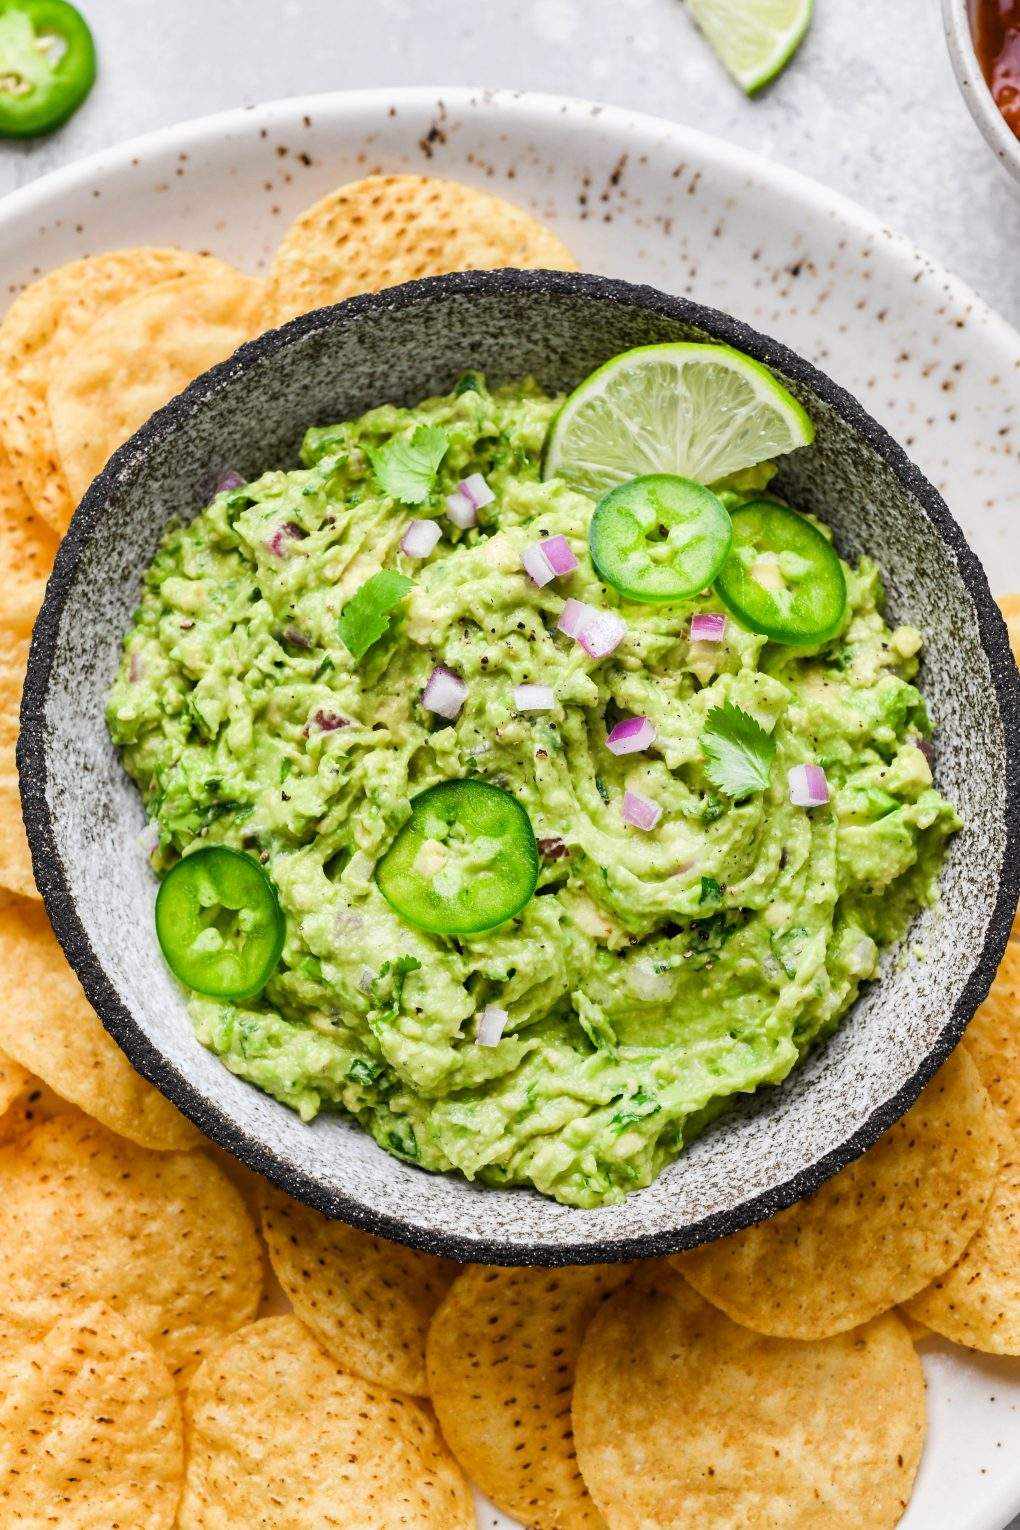 Overhead shot of a small bowl of bright green guacamole. Guacamole is topped with some finely diced onion, thinly sliced jalapeño, and cilantro leaves, surrounded by round yellow tortilla chips.